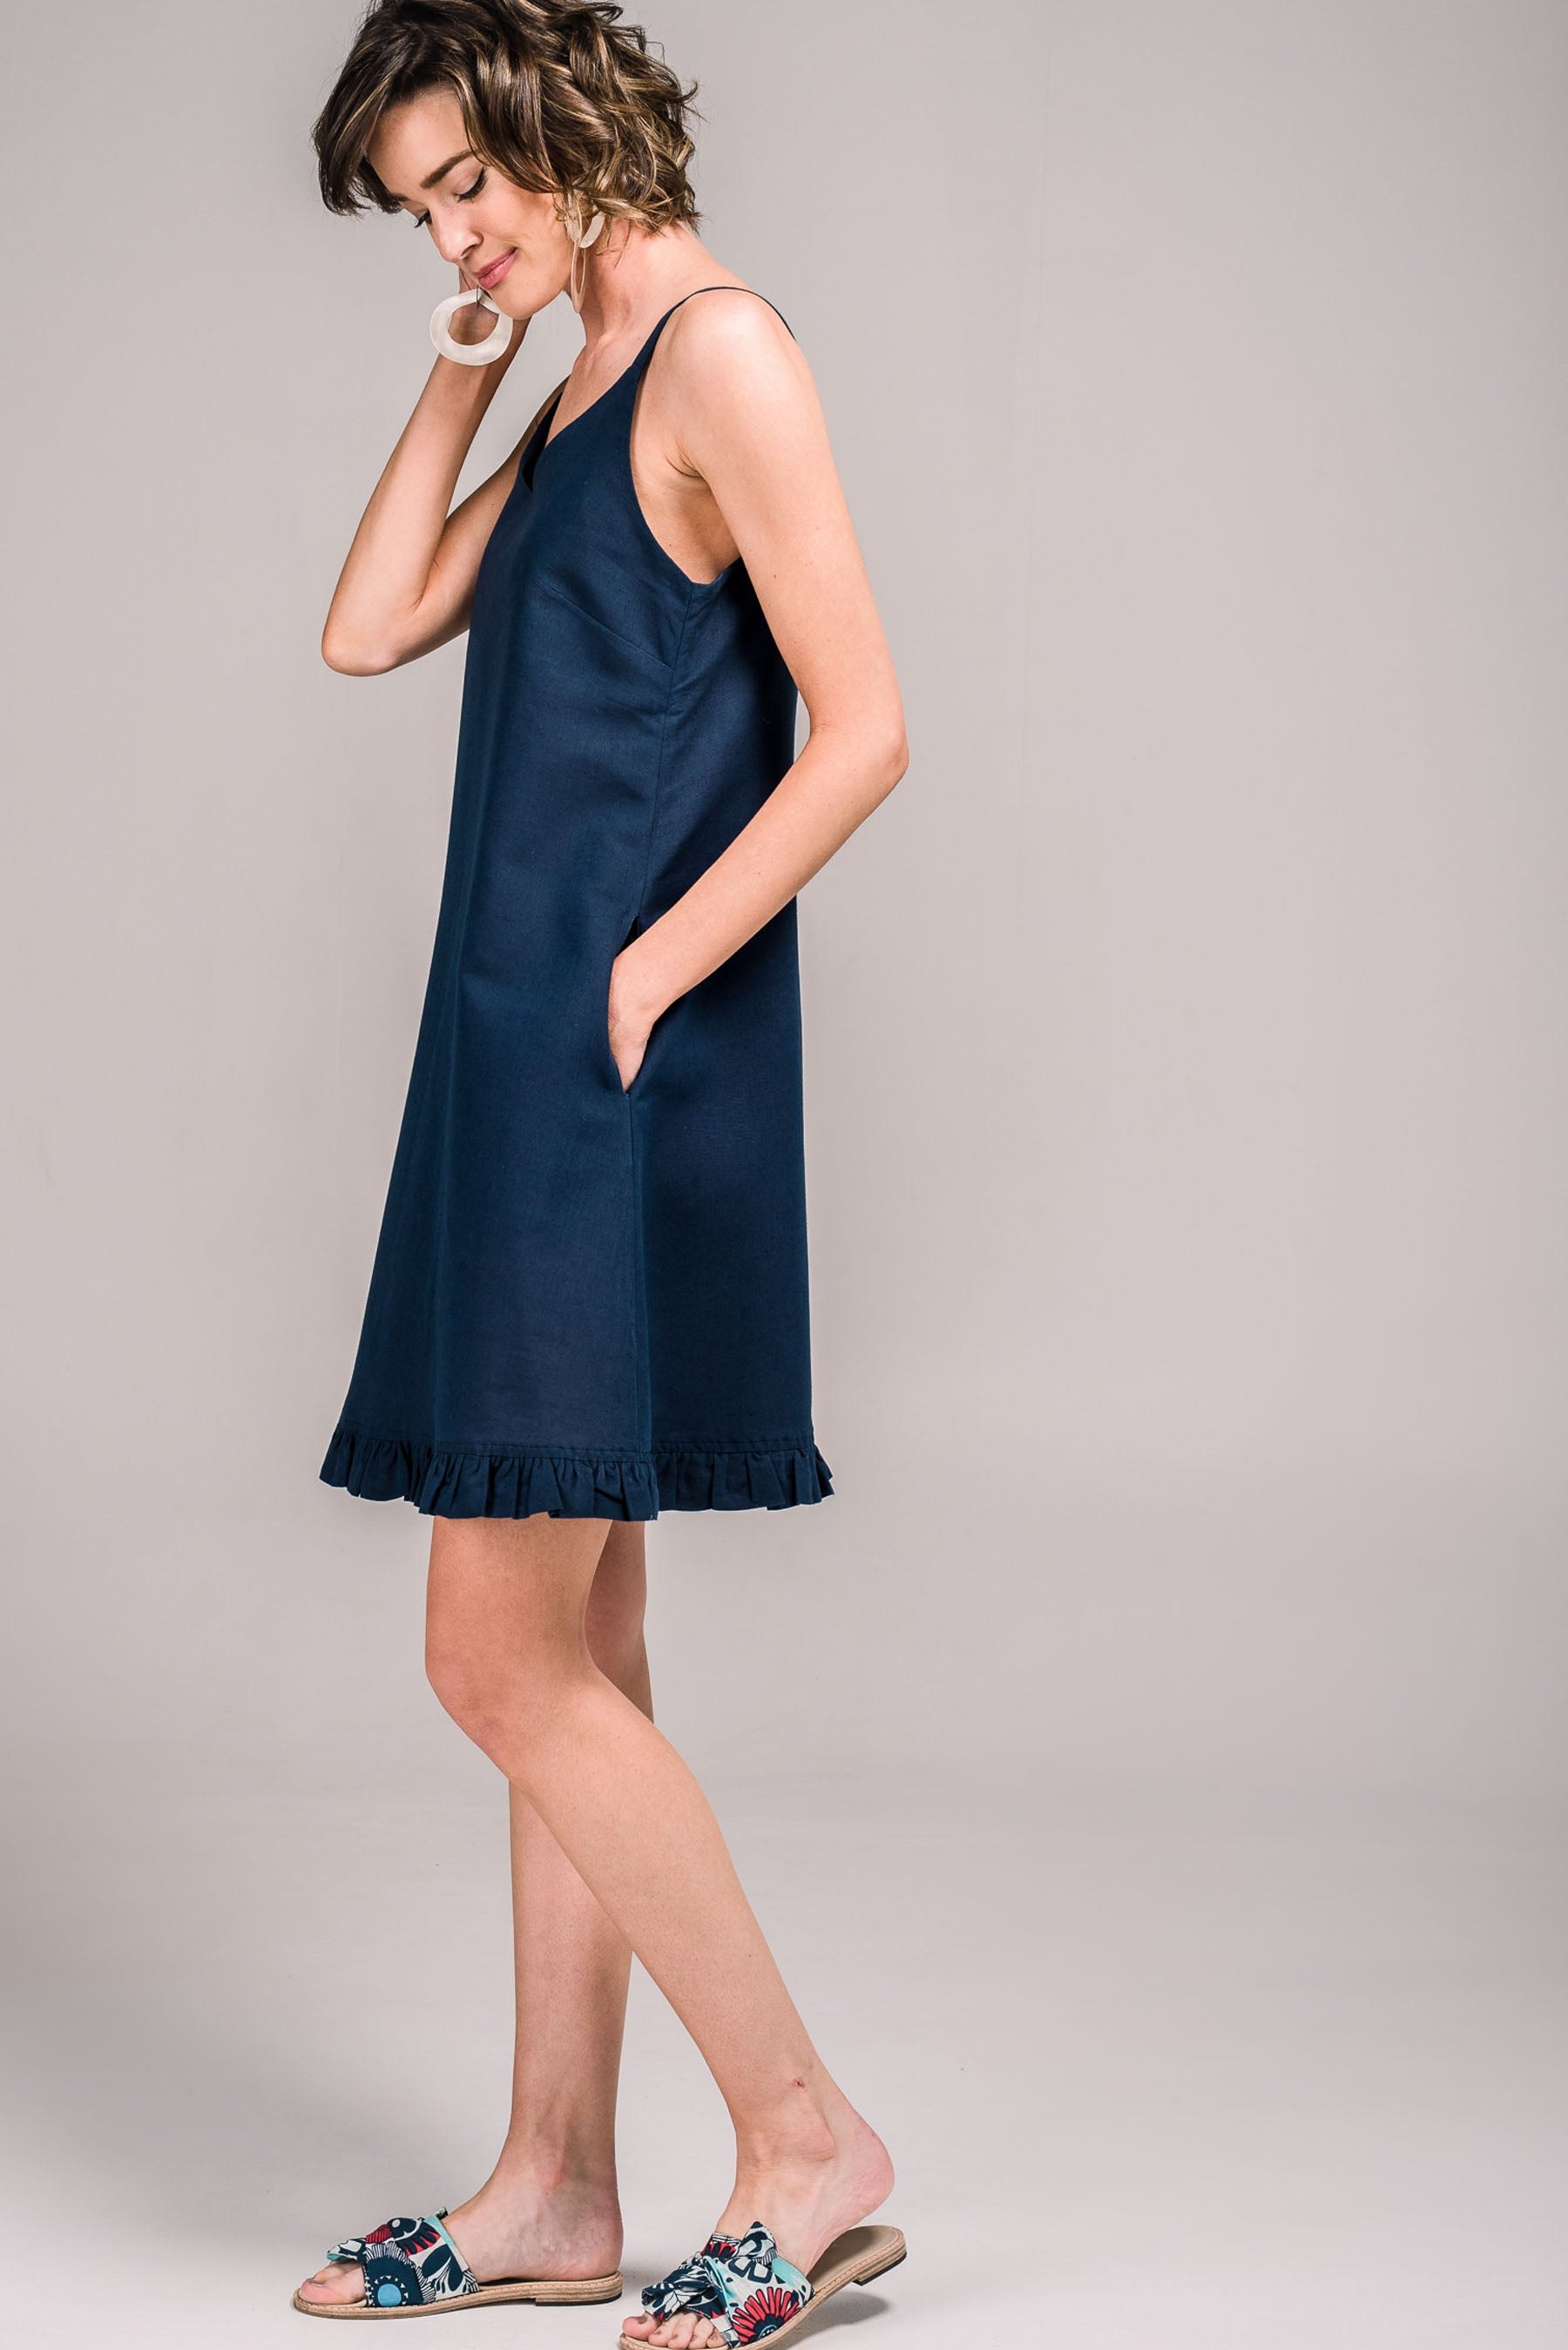 89d61d5902a Krissi Dress French Navy Krissi Dress French Navy ...